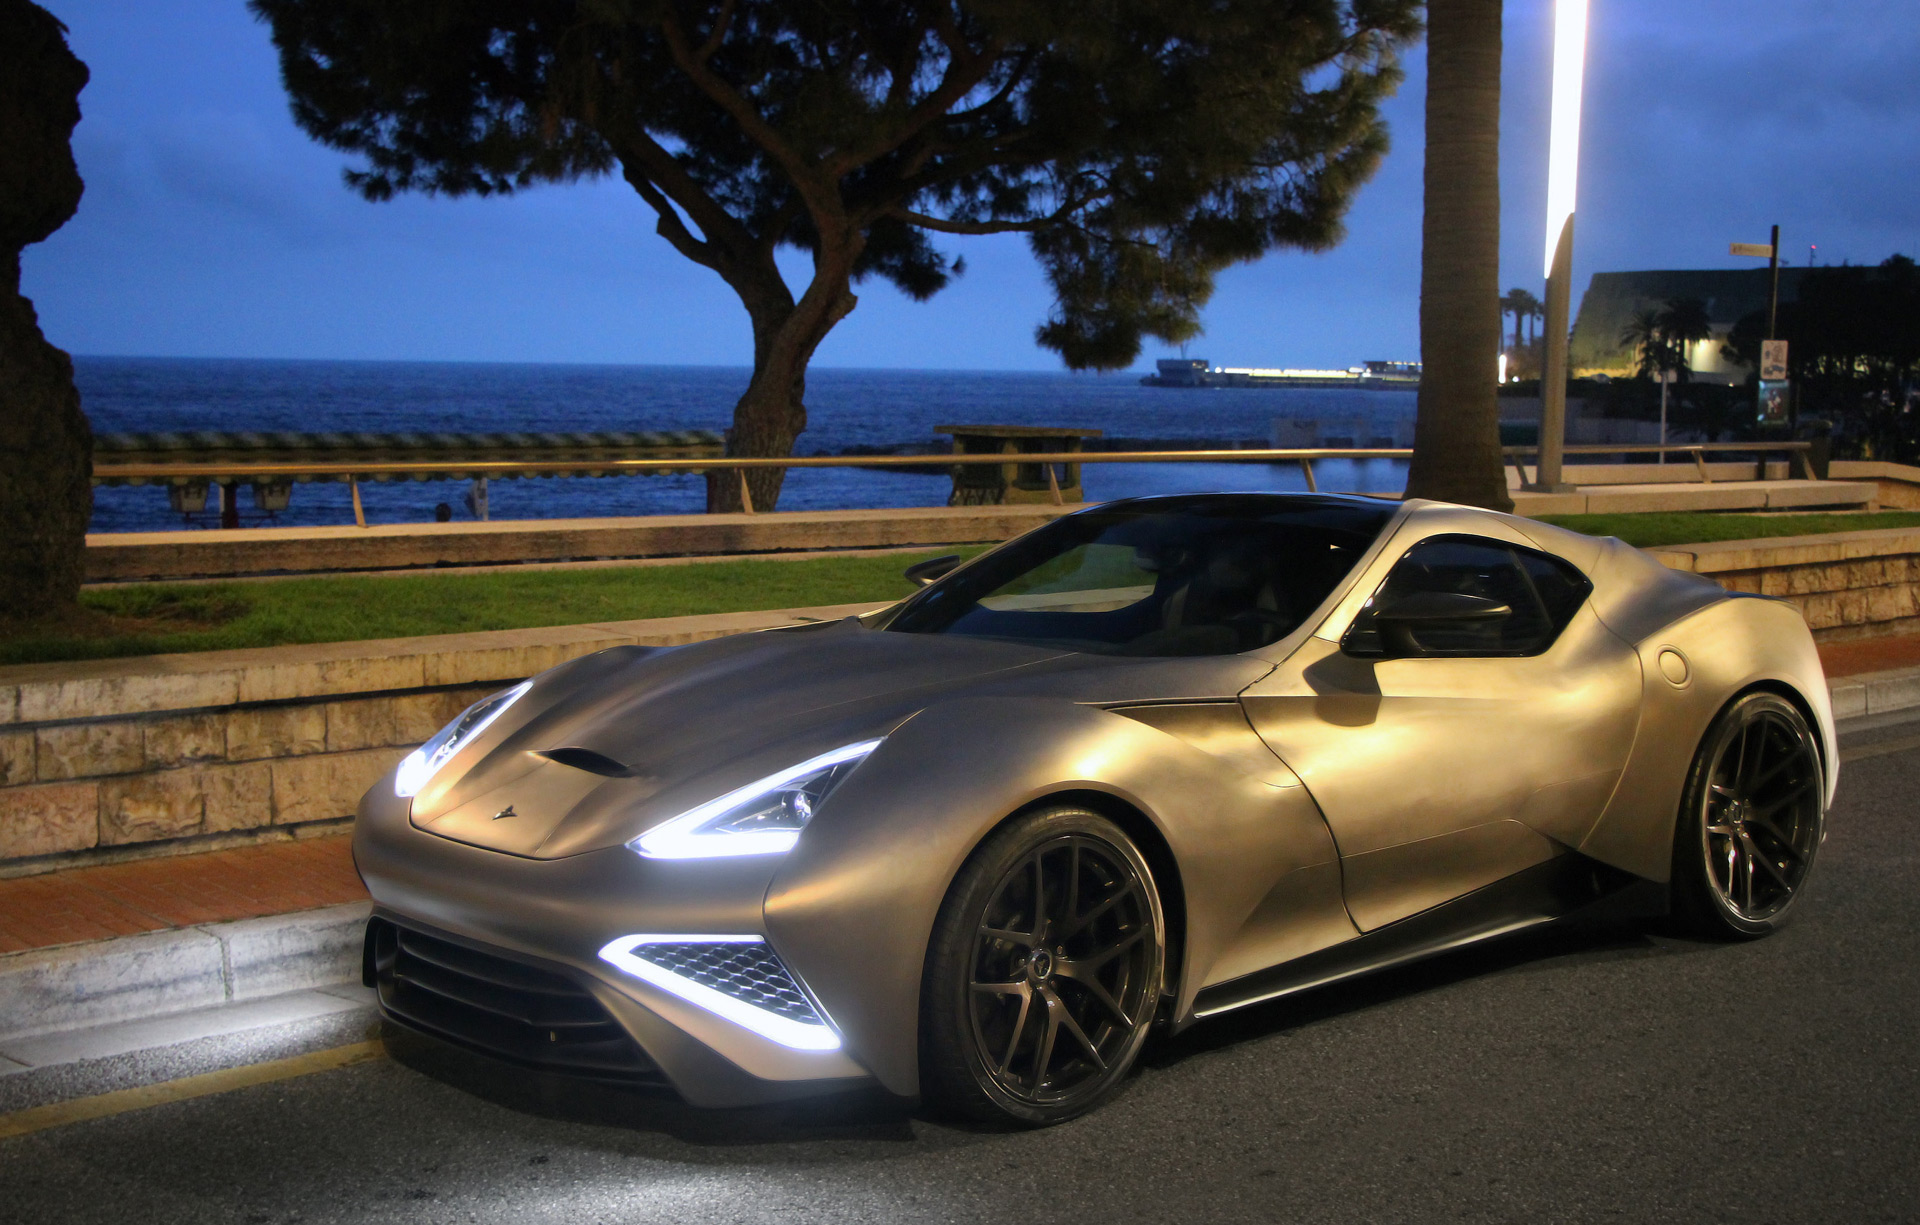 World's only titanium car can be yours for $2.78 million